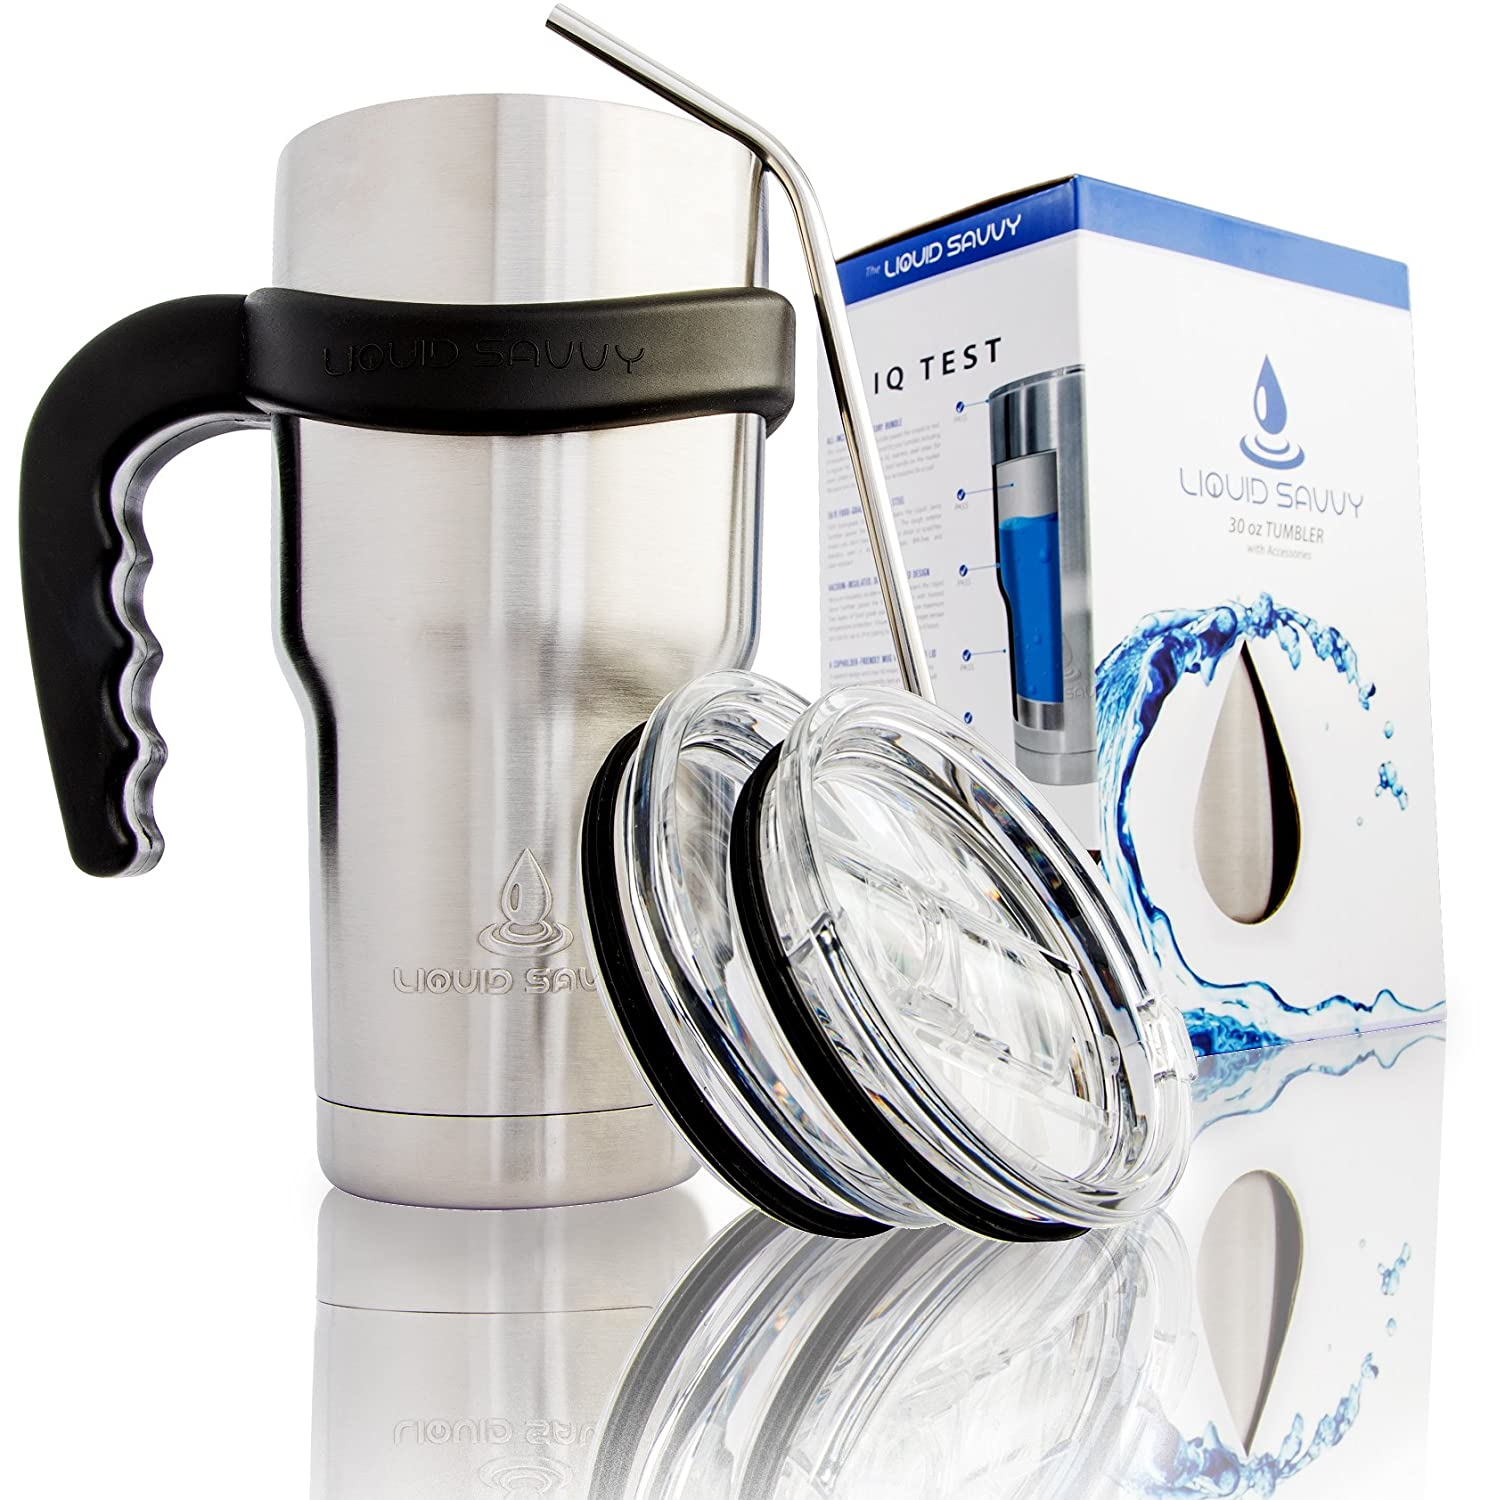 bb58effe059 Liquid Savvy 30oz Stainless Steel Tumbler Bundle - Includes Tumbler, 2  Lids, Straw, and Handle - Double Walled Vacuum Insulated Tumbler for Hot  and Cold ...